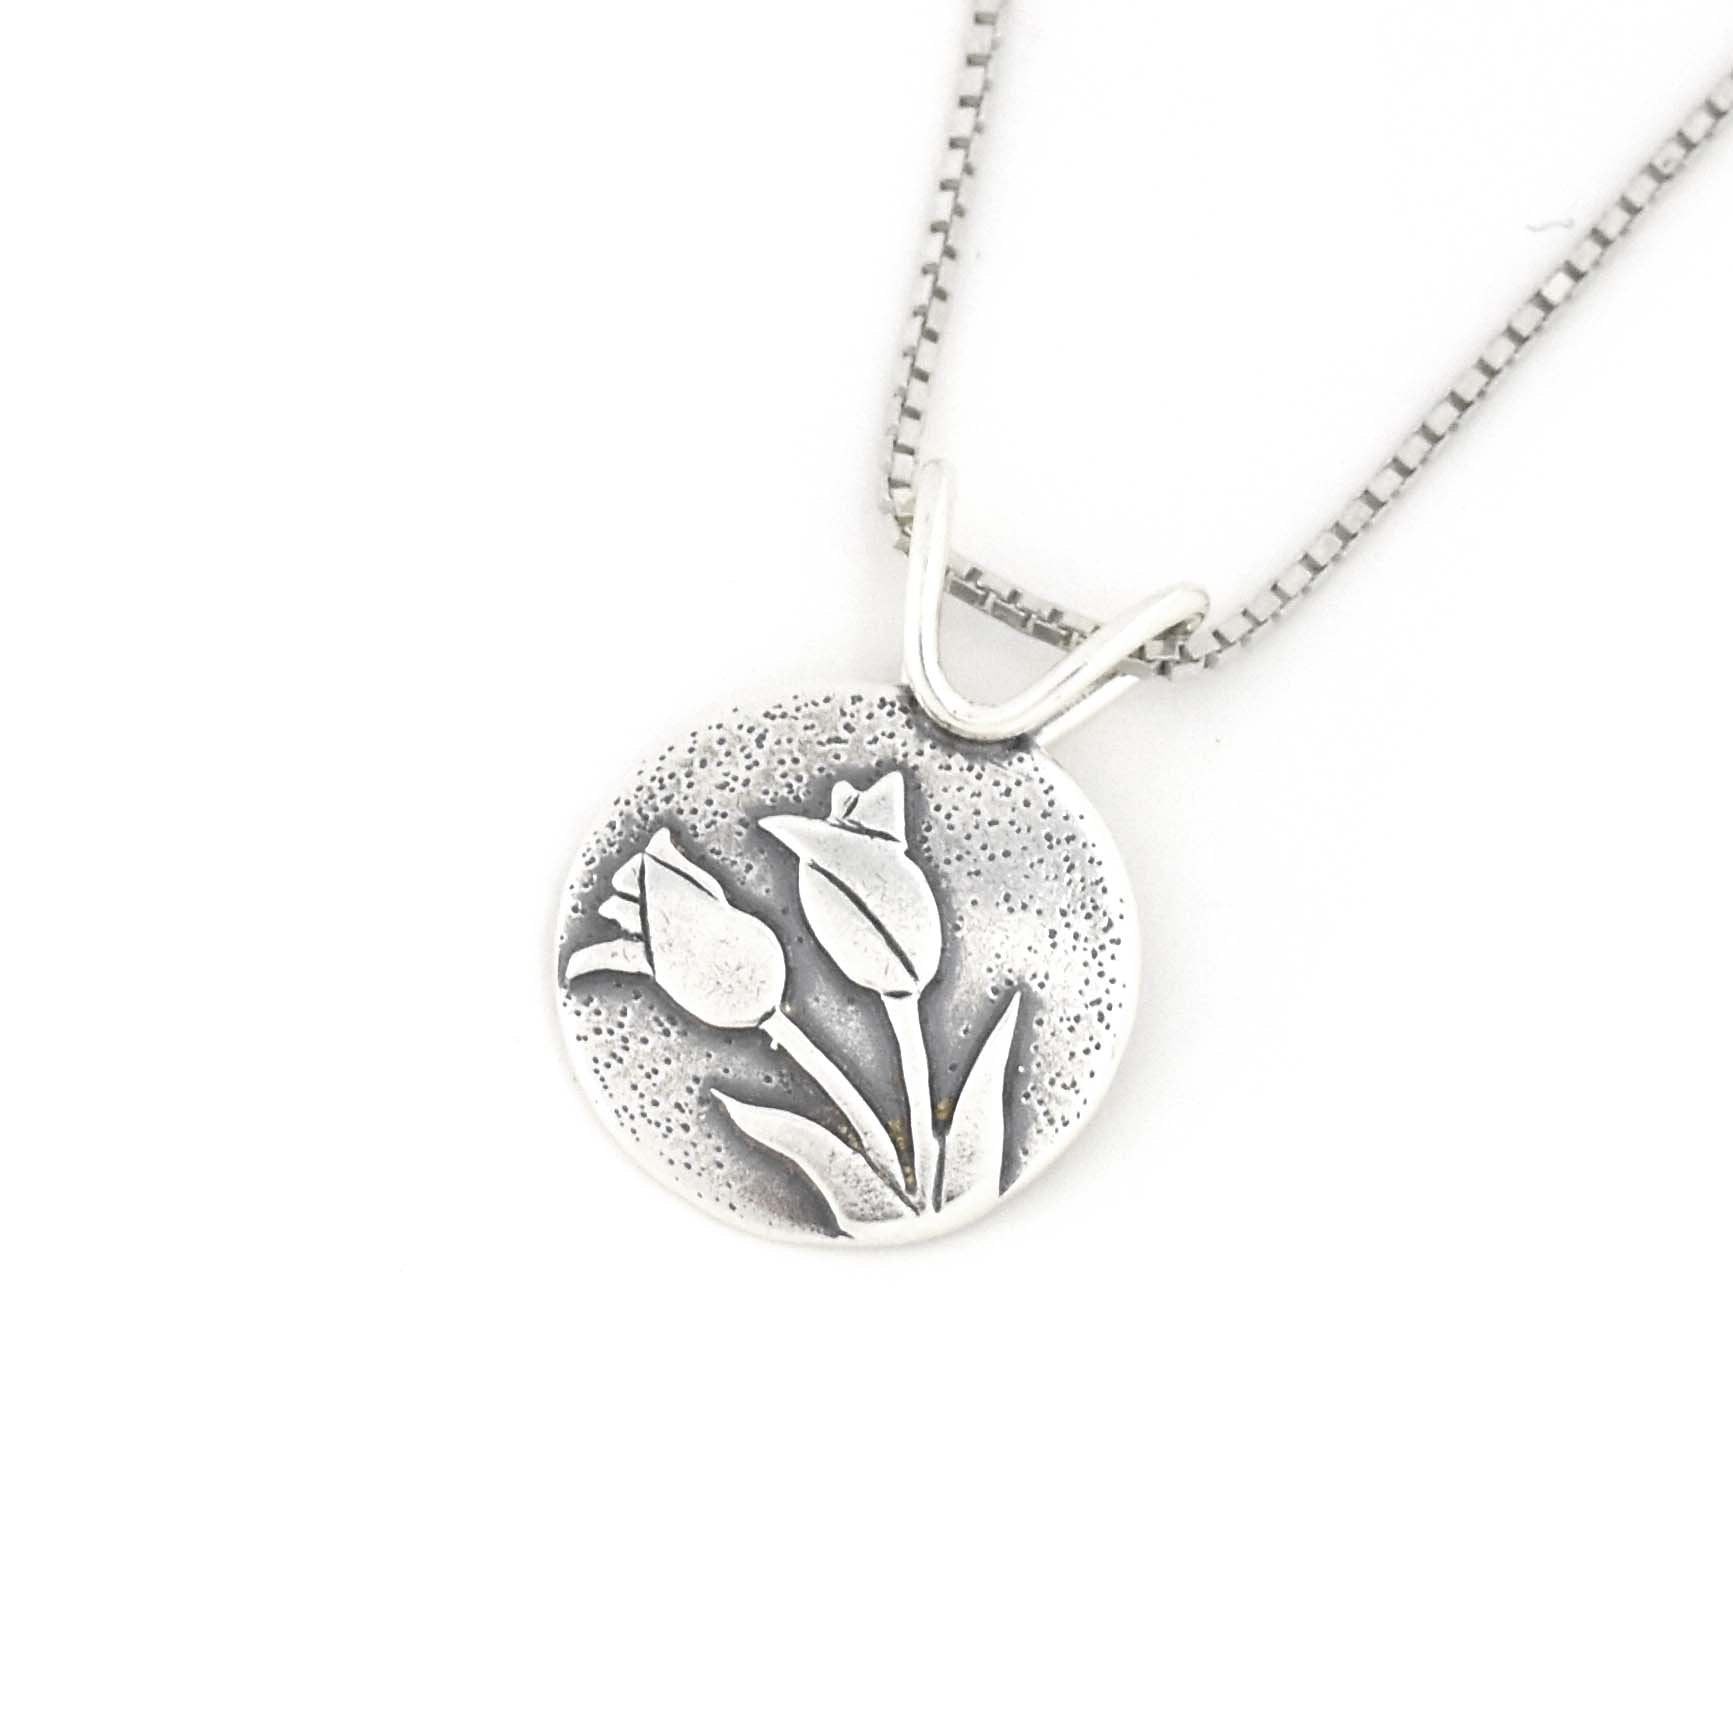 Small Tulip Bouquet Pendant, Silver Pendant handmade by Beth Millner Jewelry